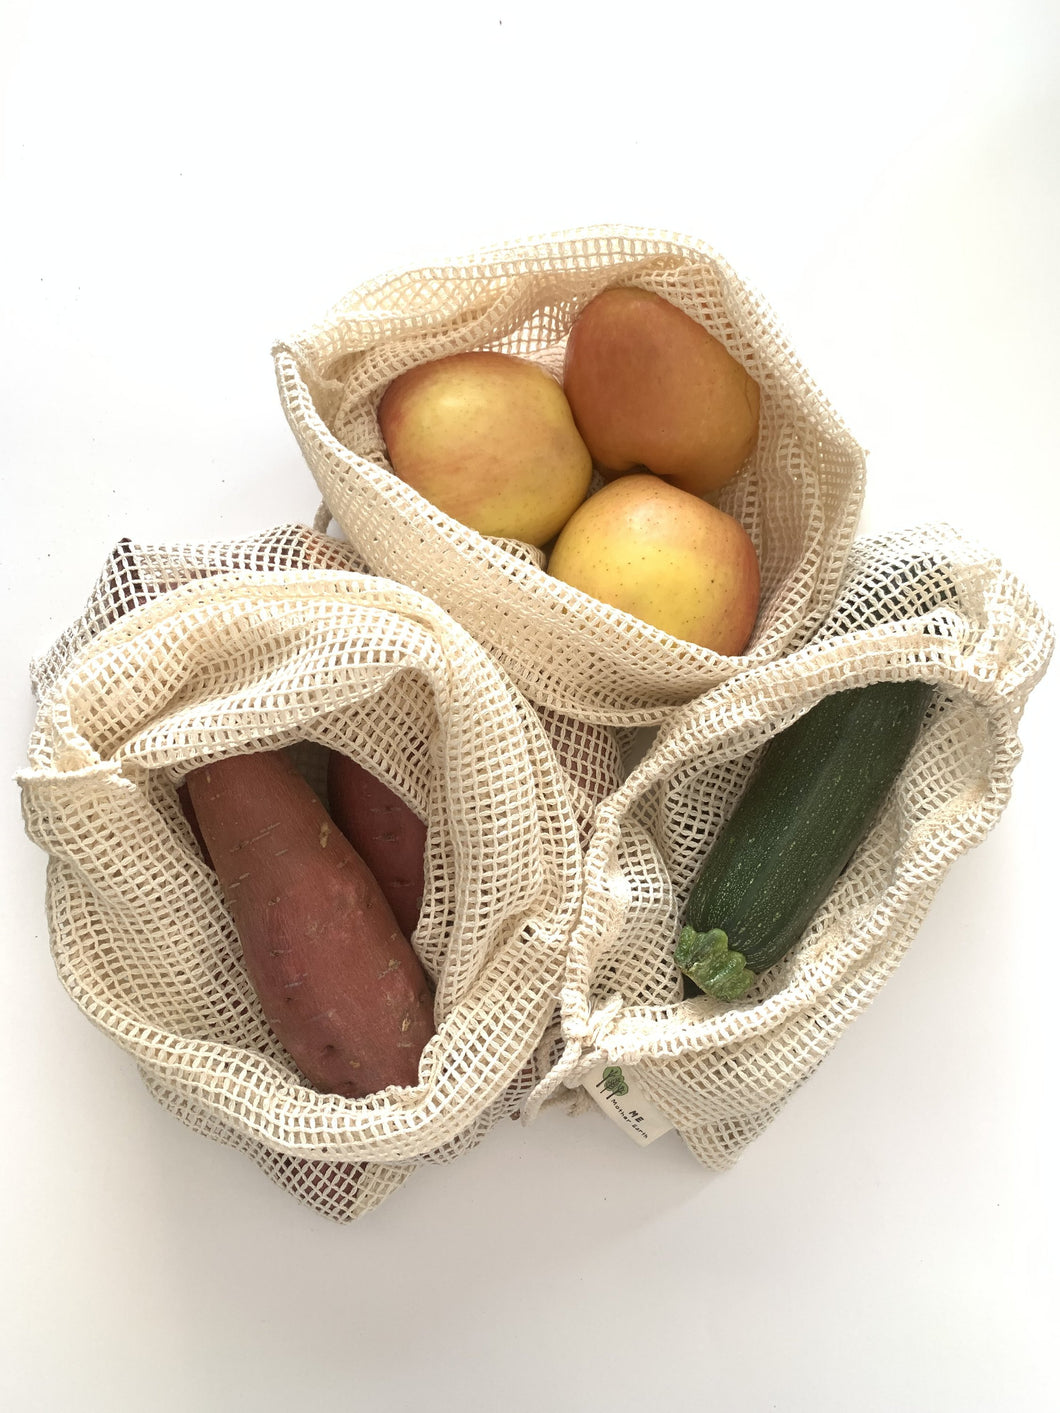 Three reusable produce bags in 100% cotton mesh.